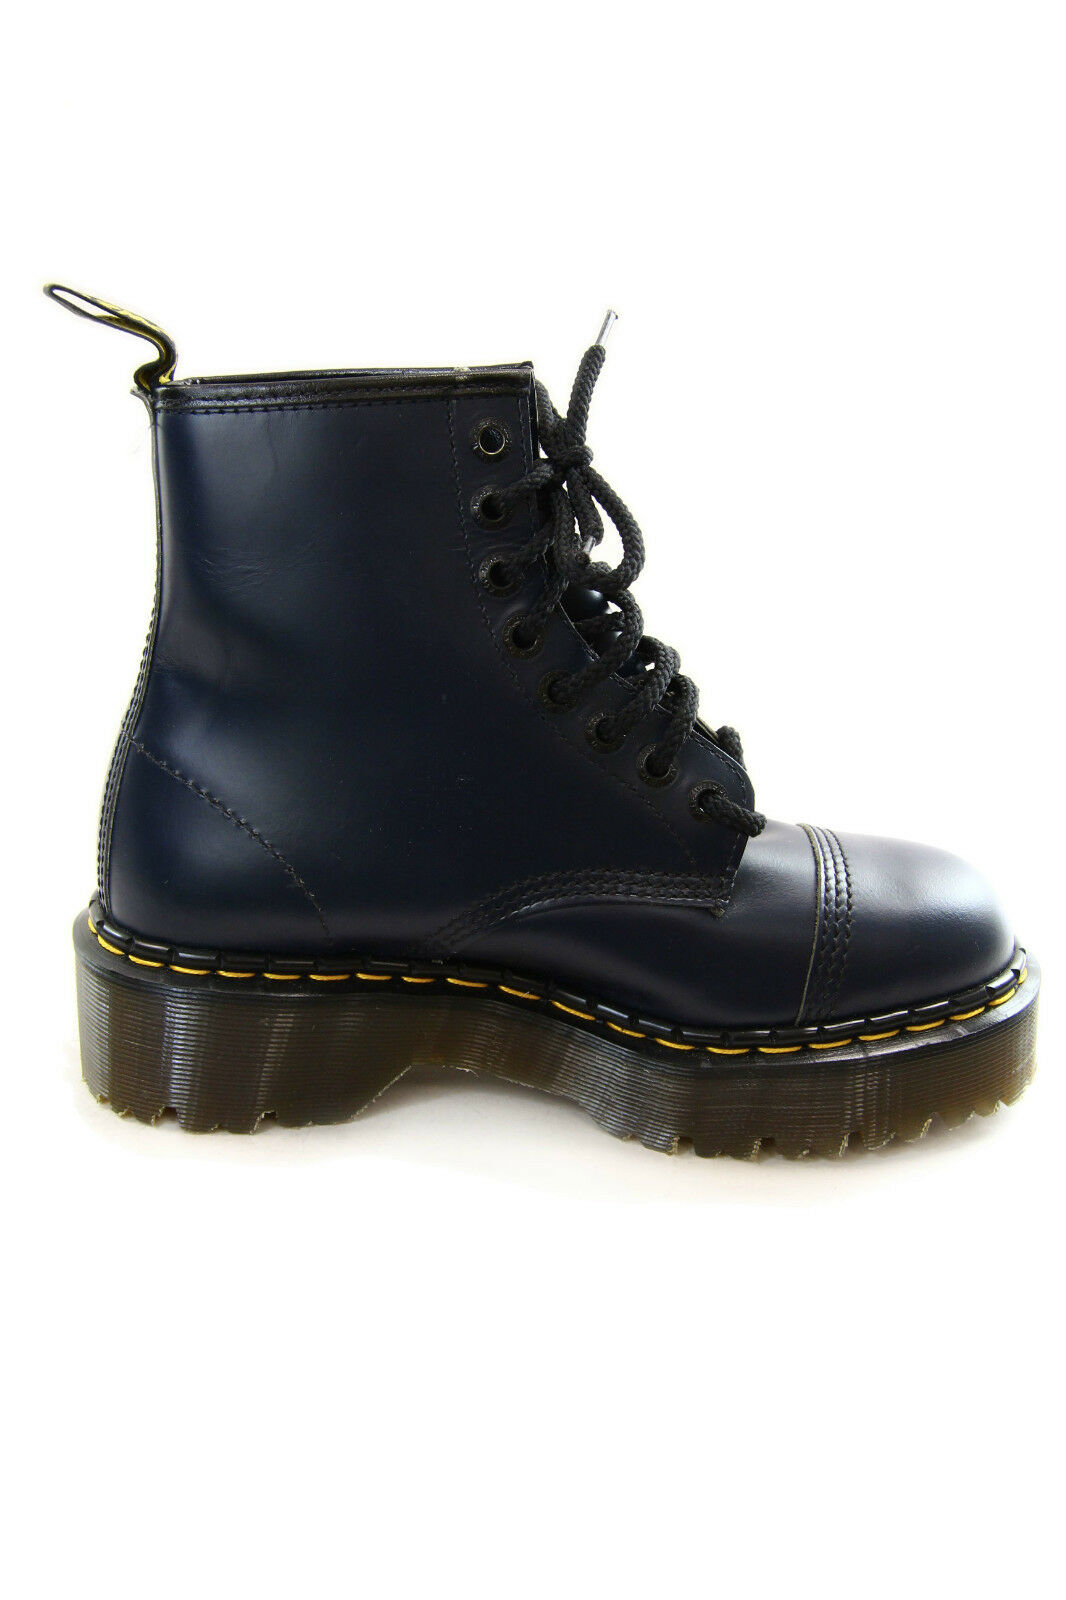 Dr. Martens 100% Vintage Boots Navy Smooth 8 Logo Eyelet 100% Martens Made in England 135ccb